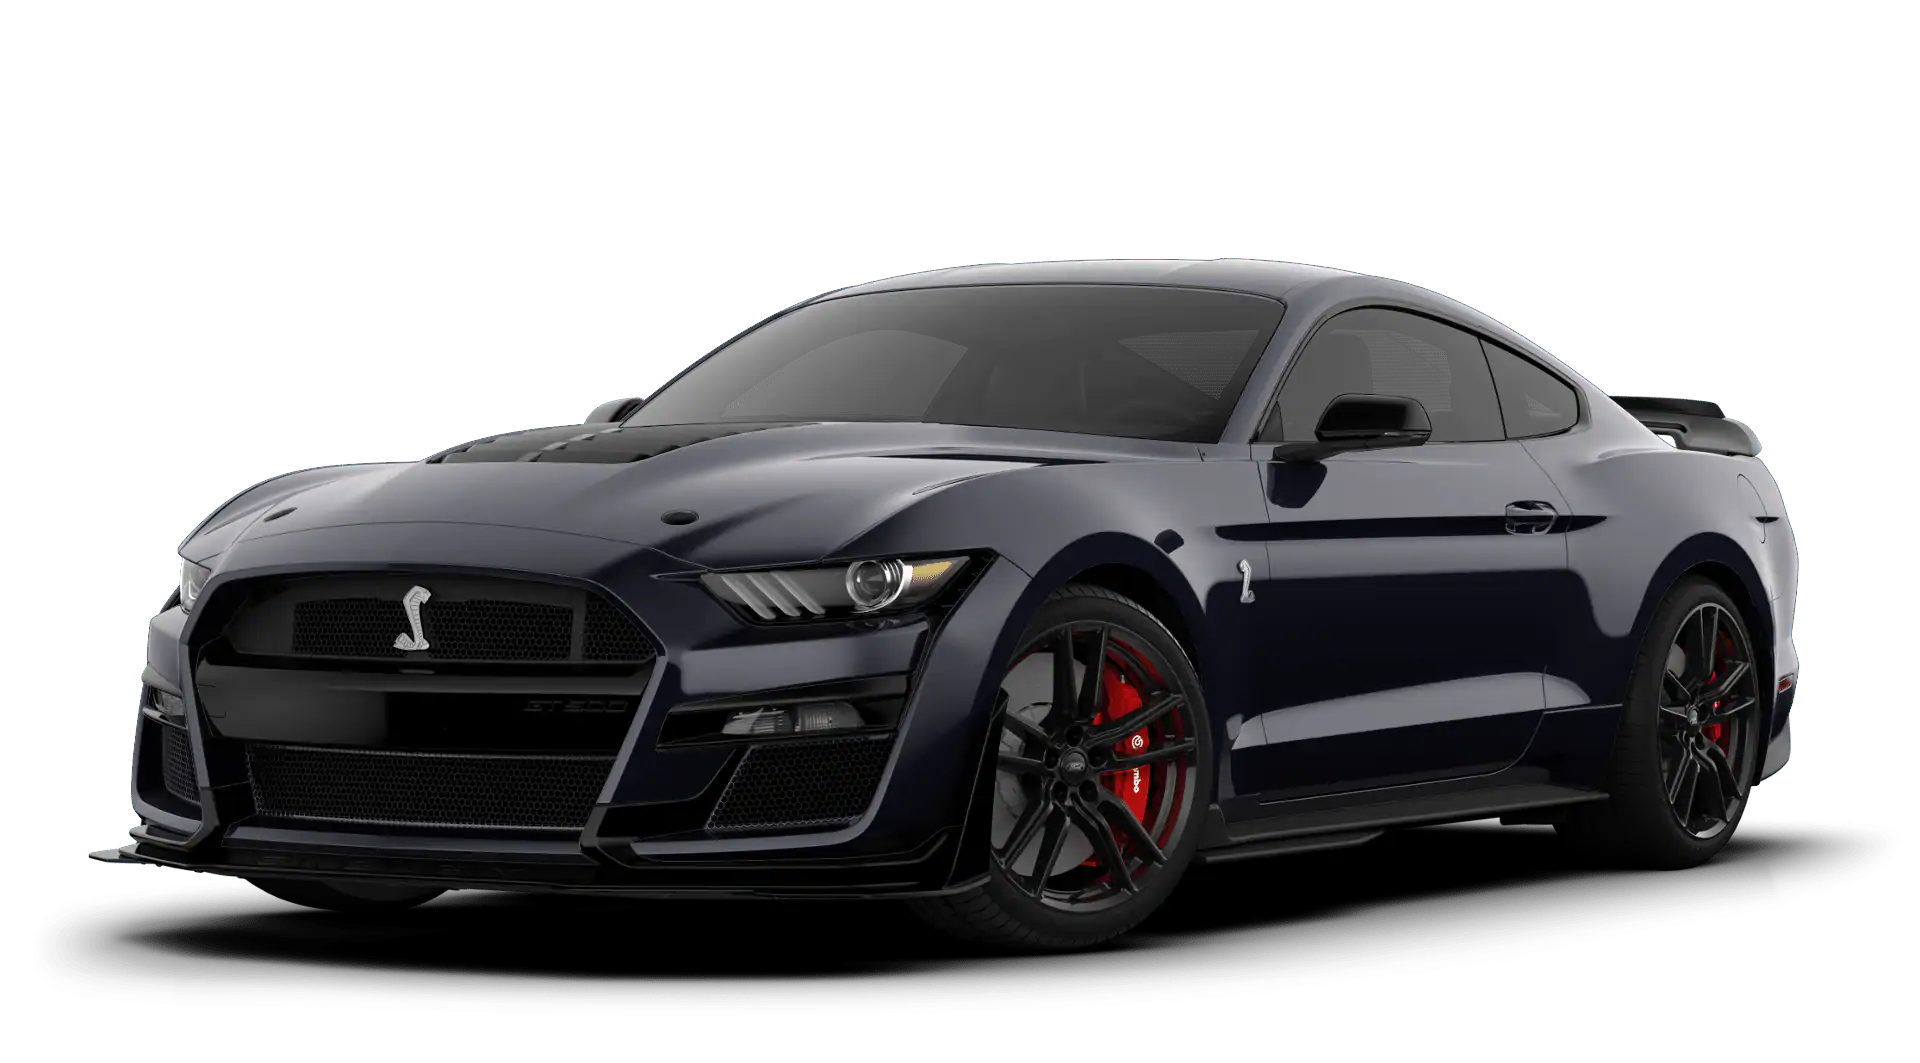 2020 Ford Mustang Shelby Gt500 Exterior Color Options